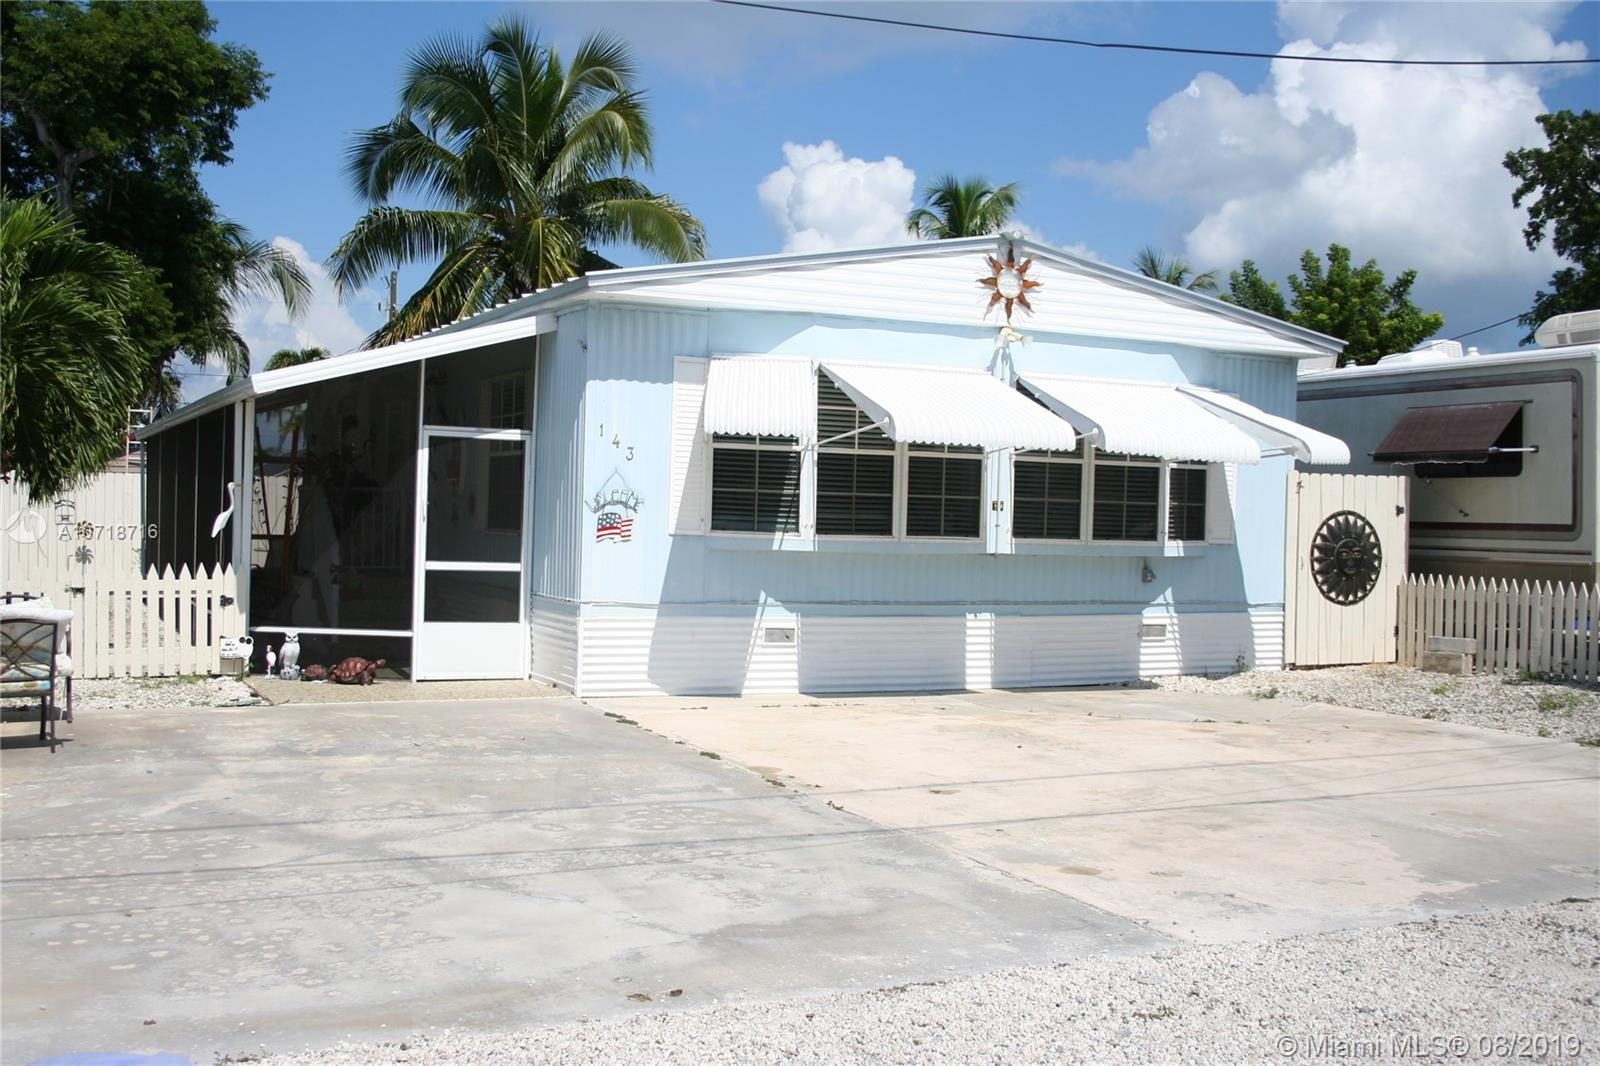 143 2nd Court, Other City - Keys/Islands/Caribb, FL 33037 - Other City - Keys/Islands/Caribb, FL real estate listing